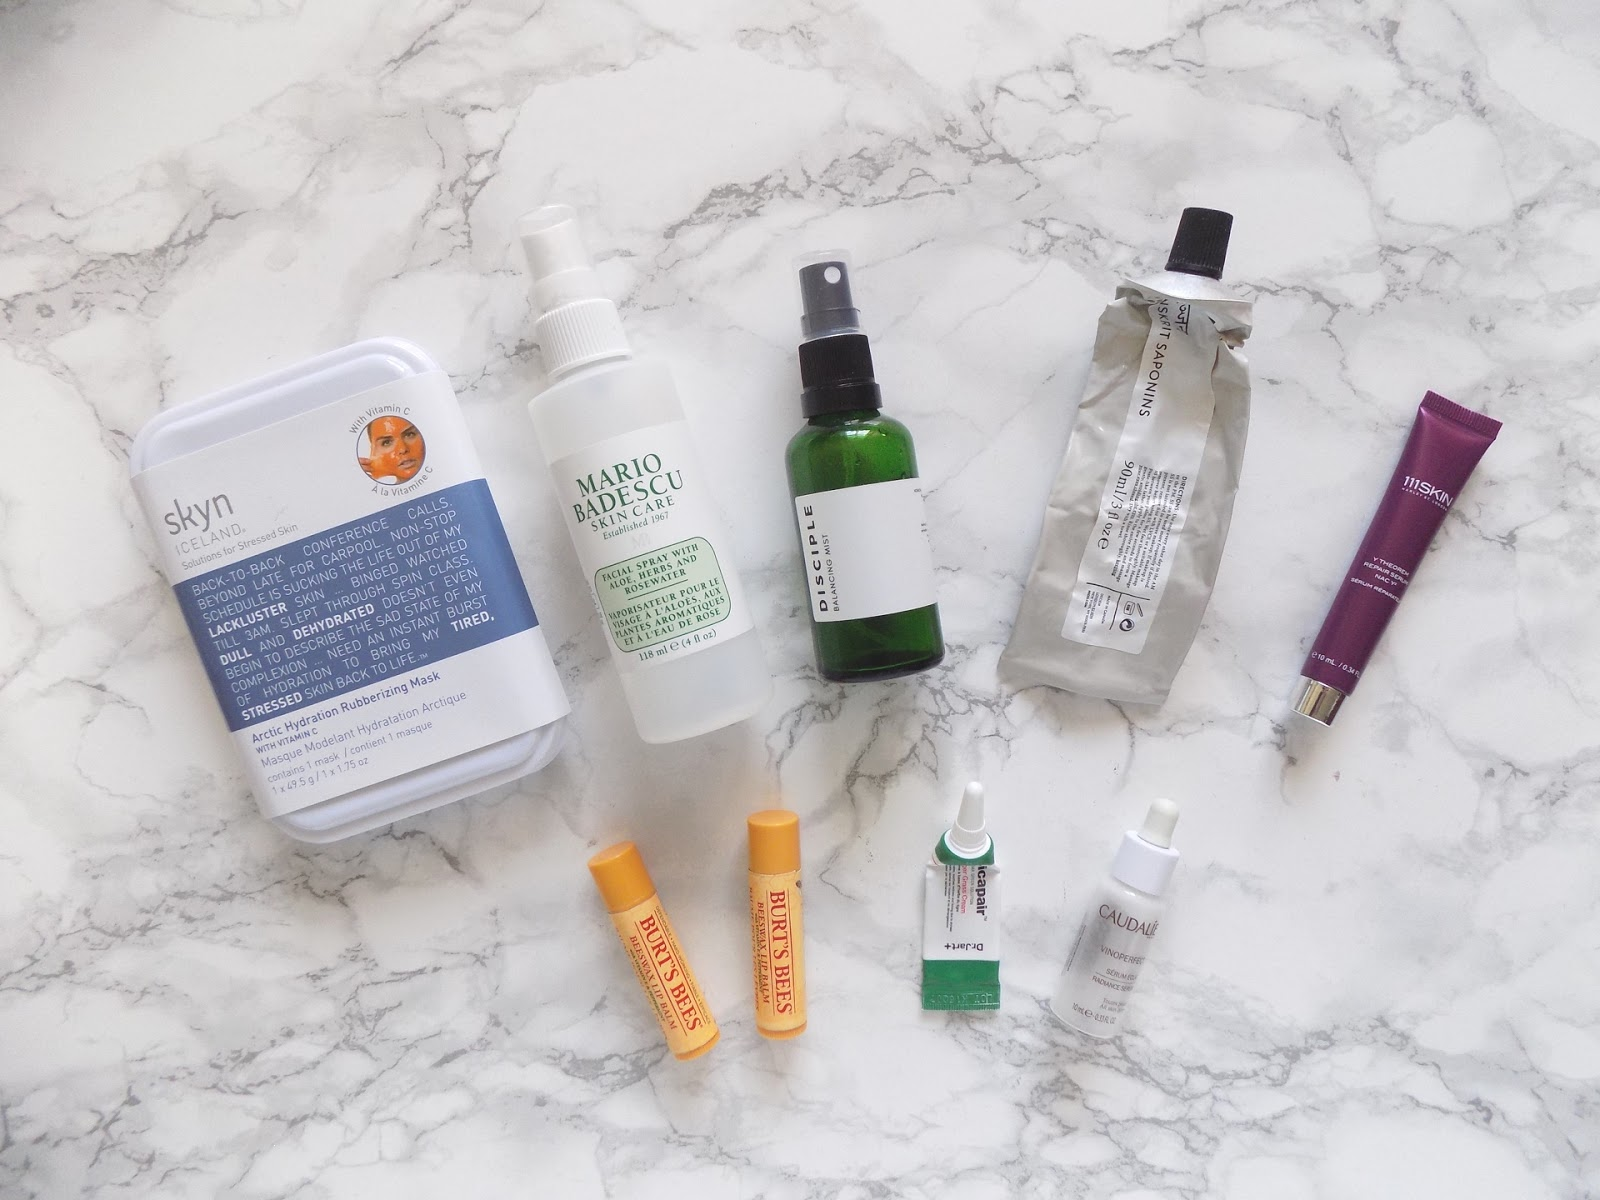 skincare empties niod disciple Mario badescu review